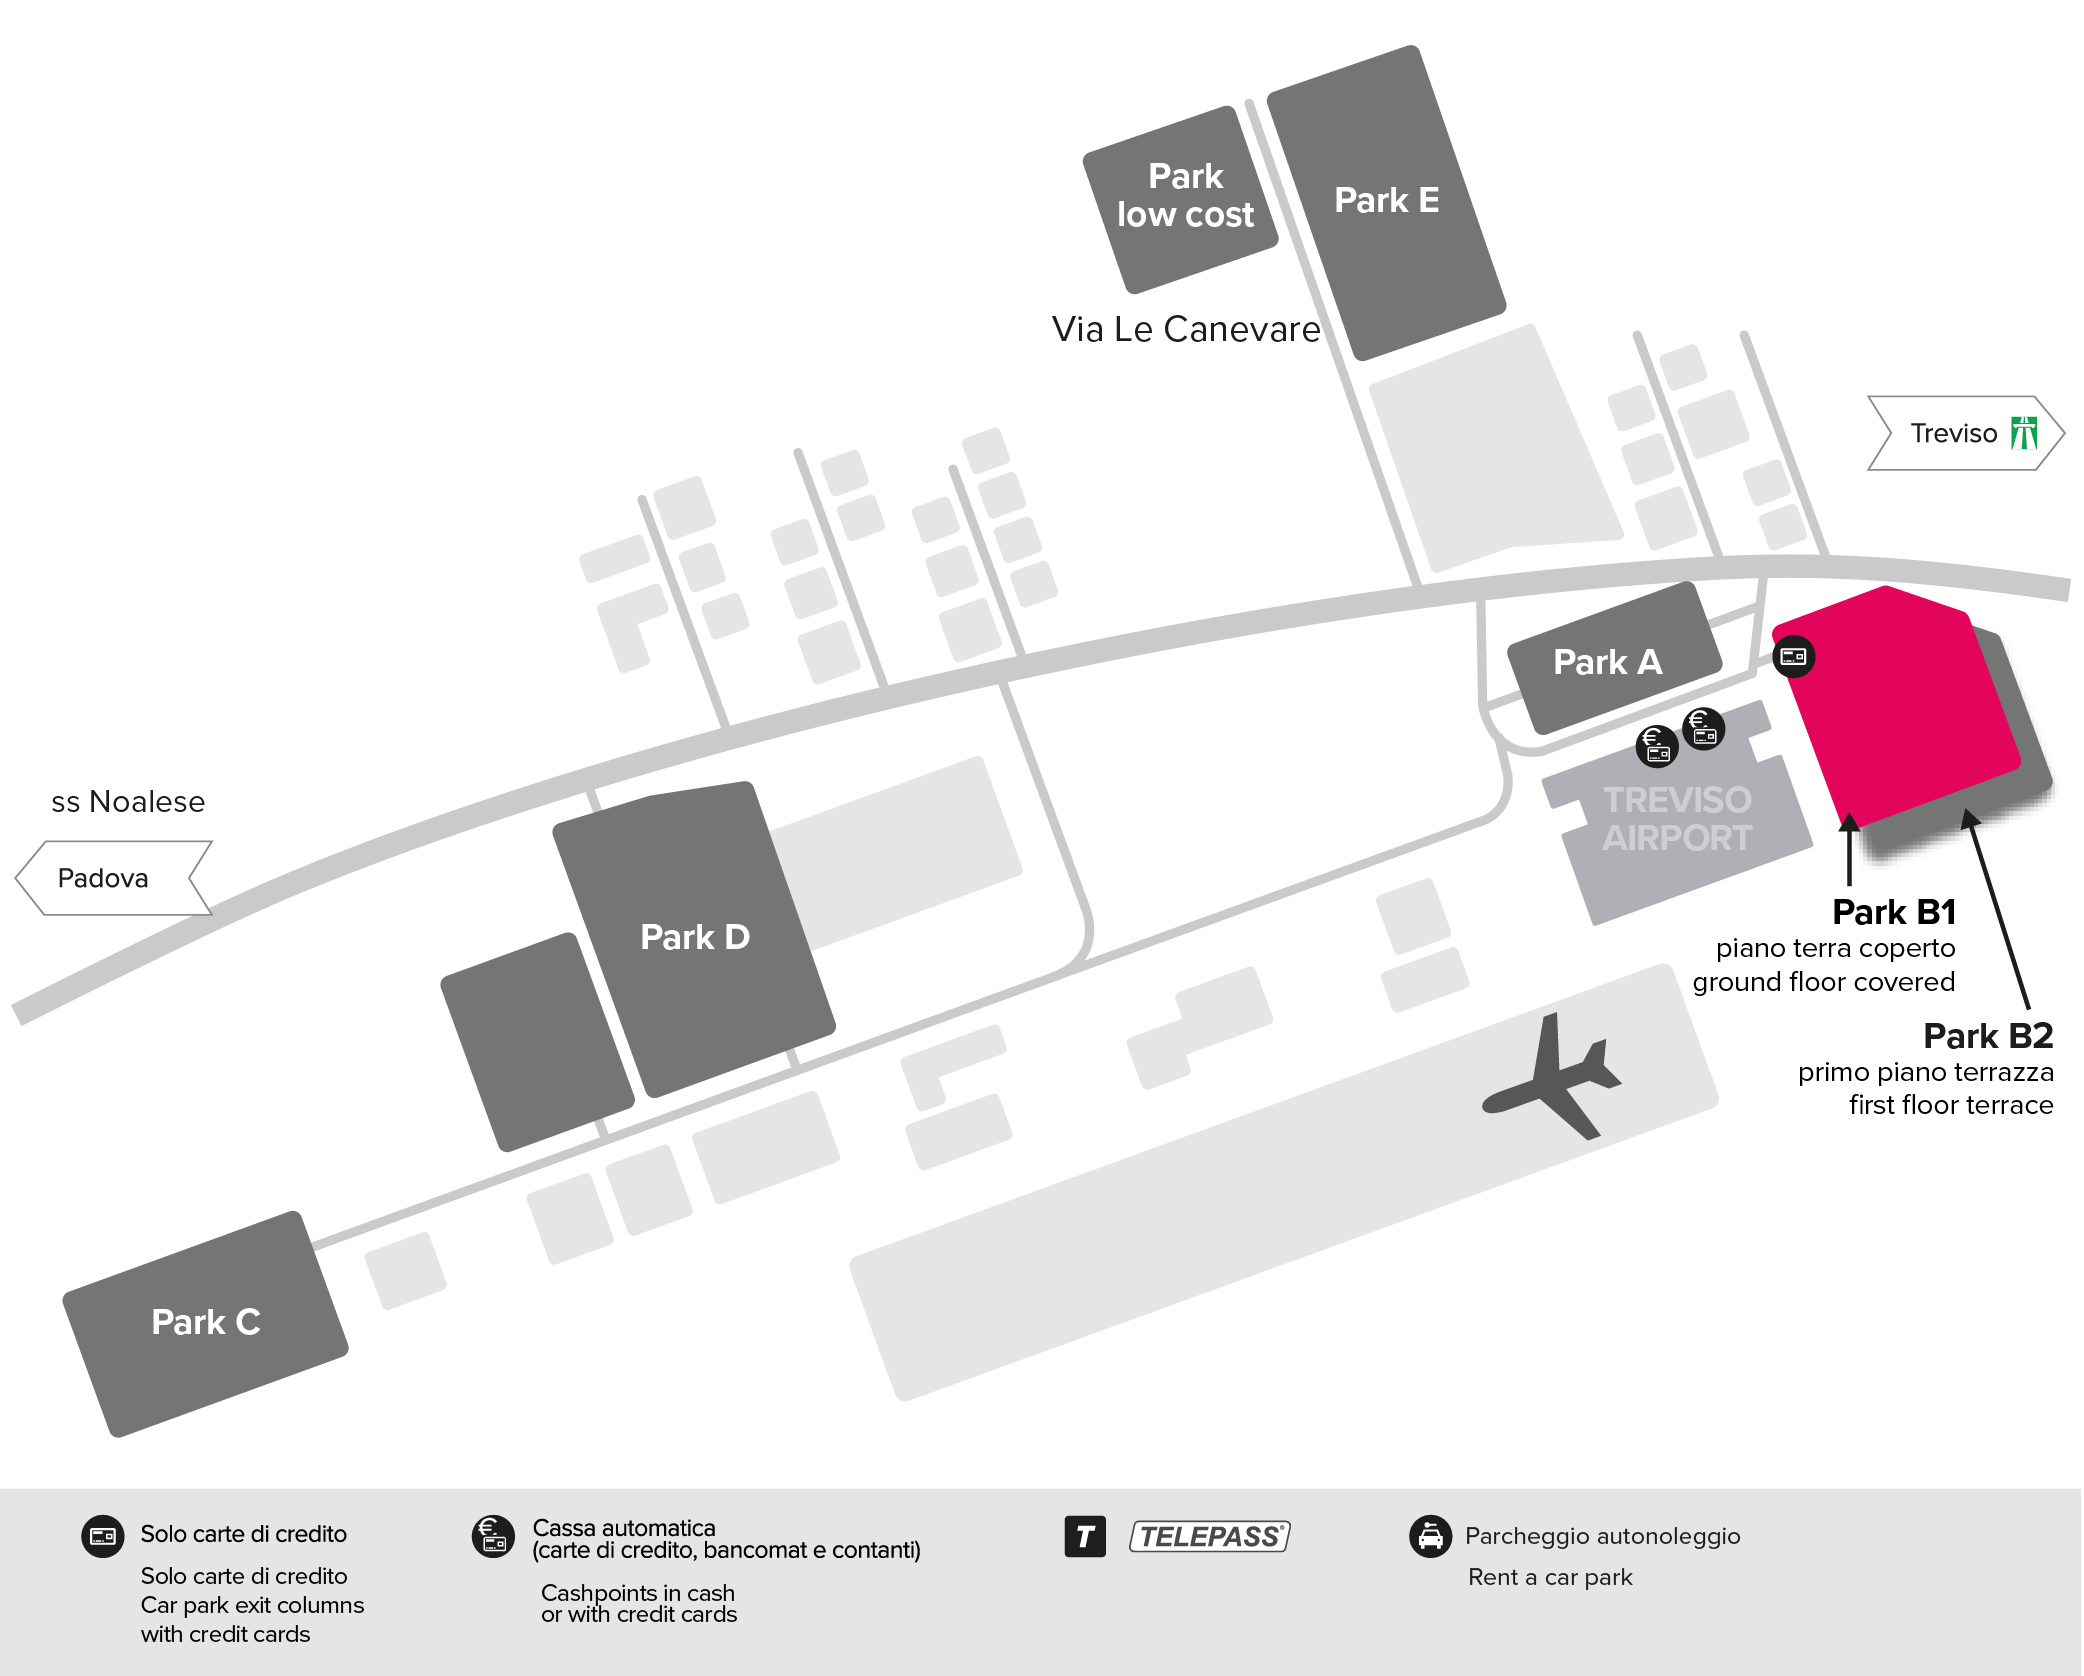 Treviso airport parking Park B1 map